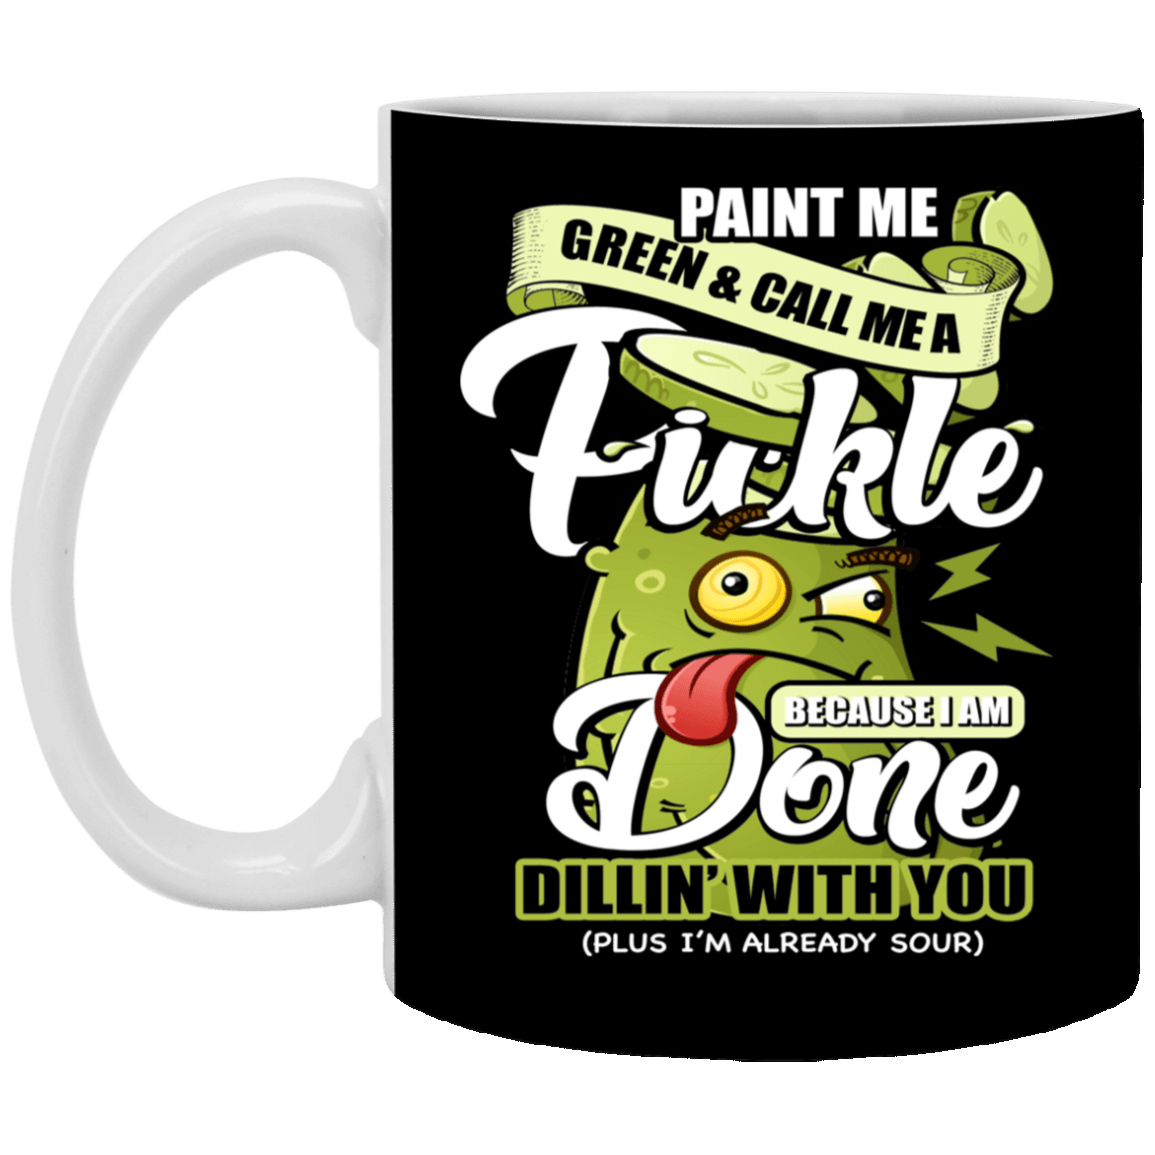 Paint Me Green And Call Me A Pickle Ceramic Coffee Mug Beer Stein Water Bottle Color Changing Mug